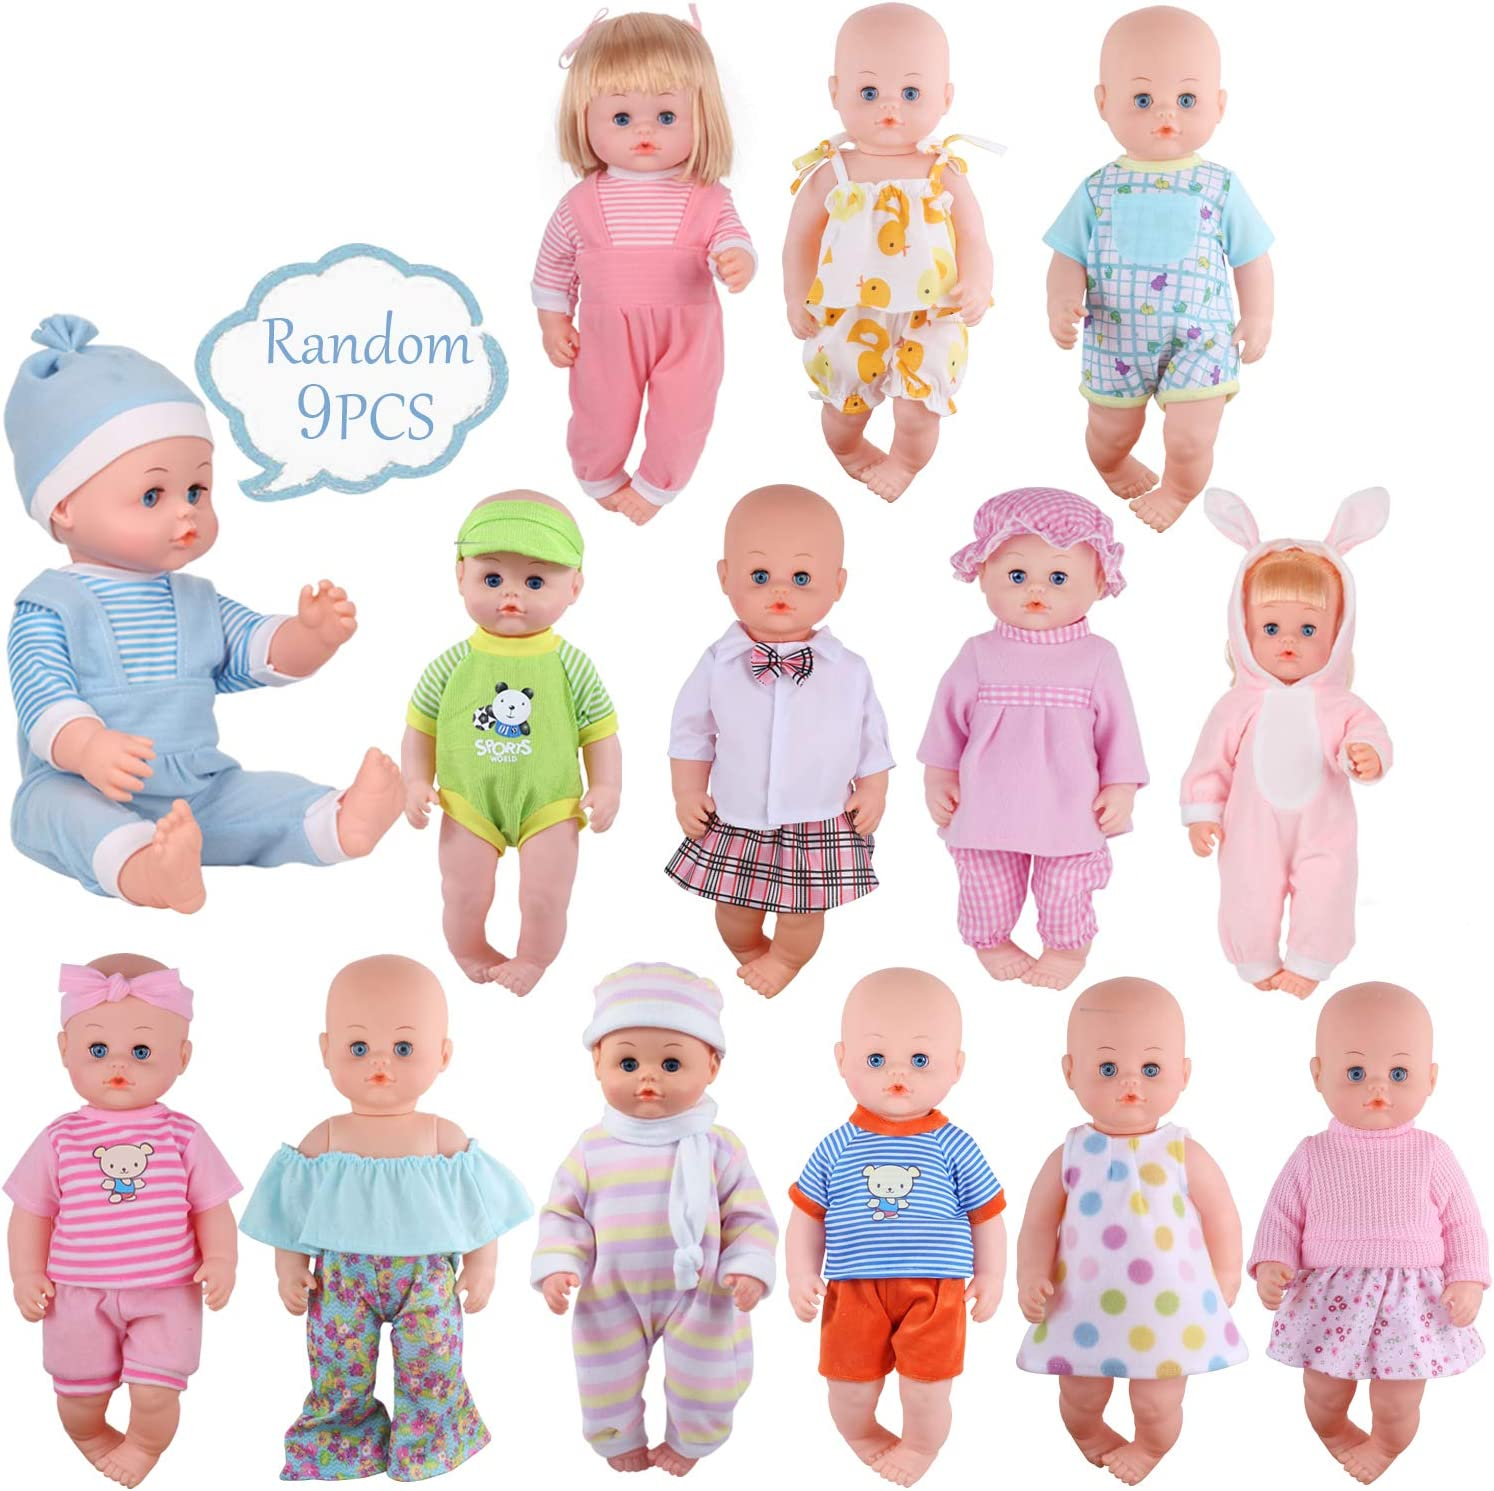 Amazon.com: Young Buds 9 Sets for 14-15 Inch Alive Baby Doll and 18-inch  America Doll Dress Clothes Outfits Cotton Clothing Multicolored: Toys &  Games